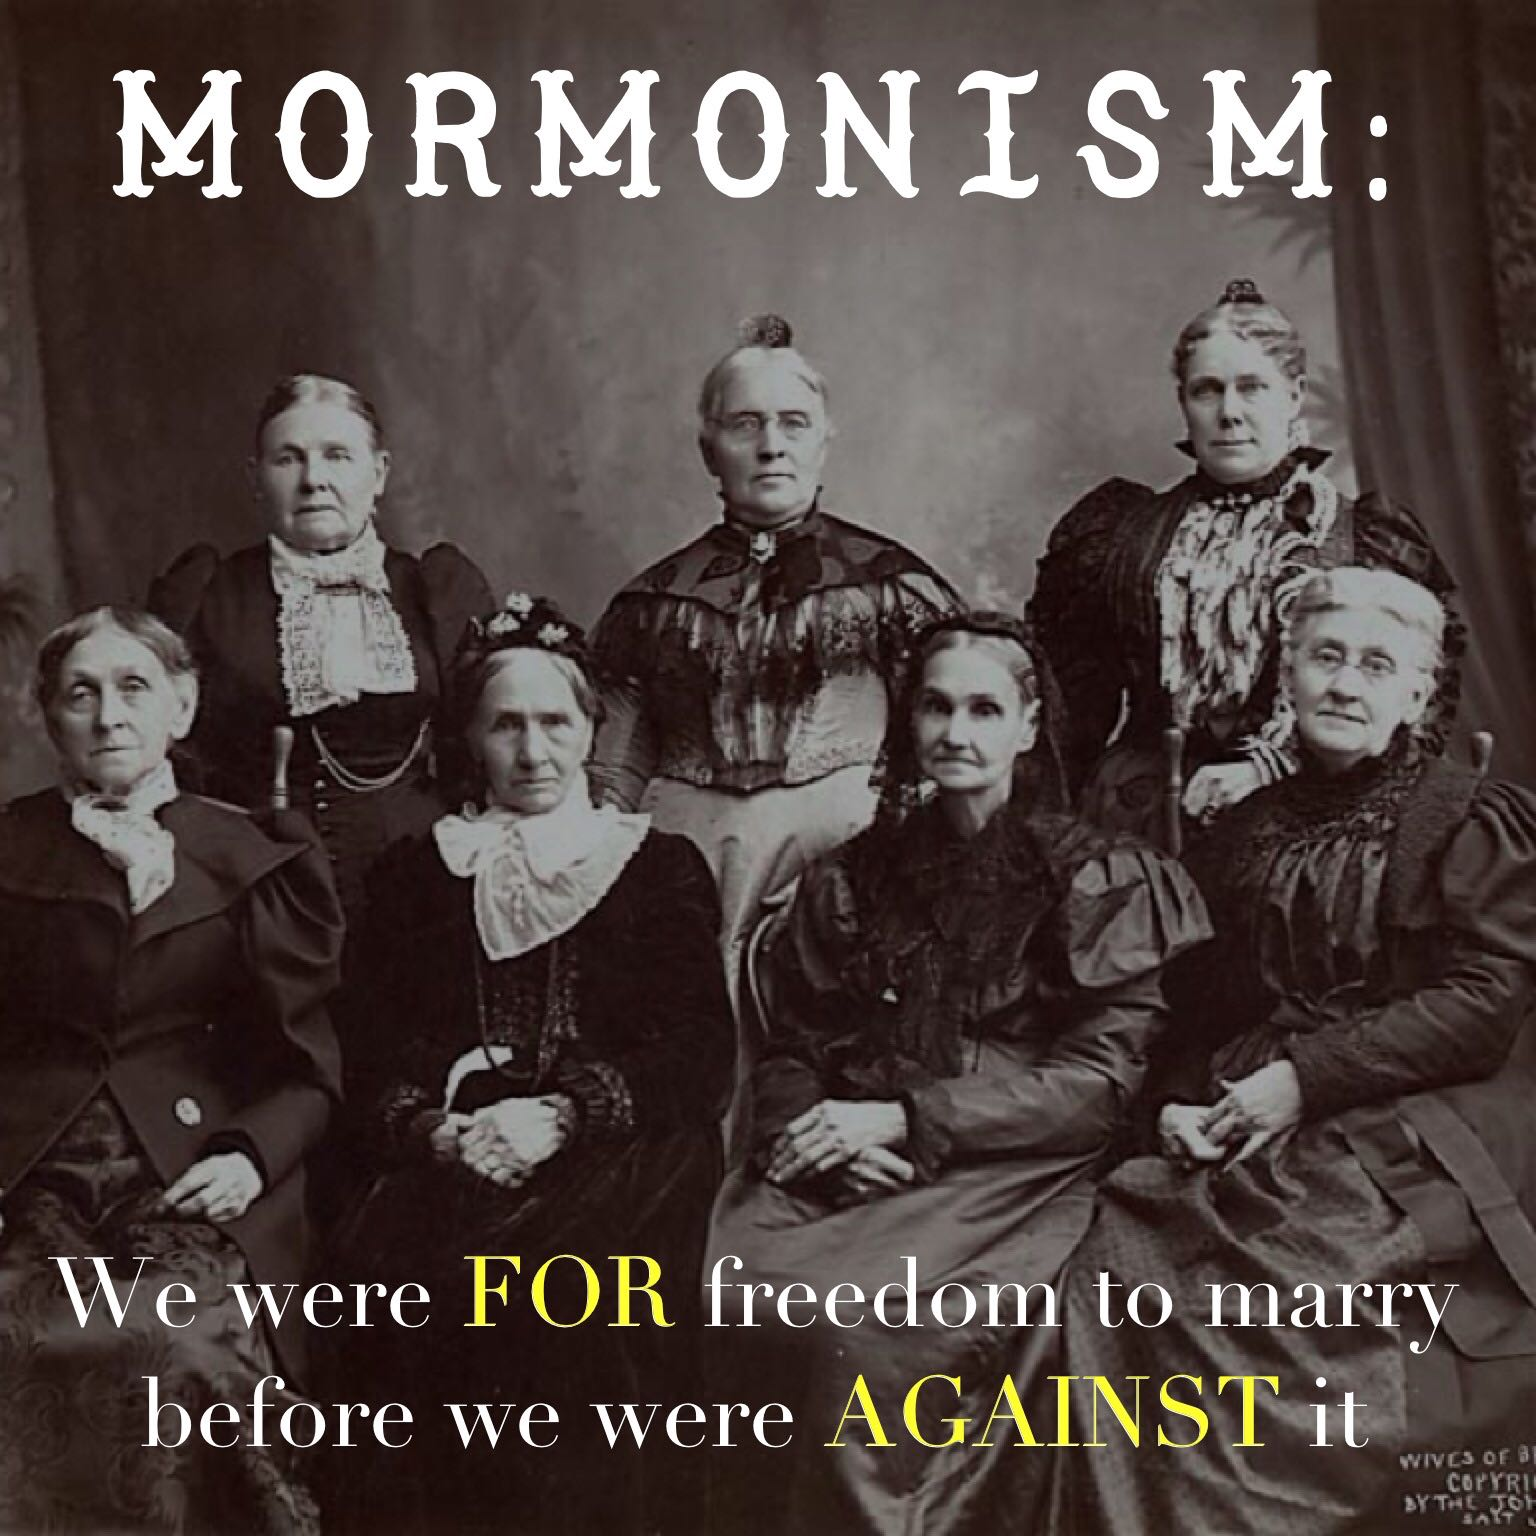 Mormons were FOR freedom to marry